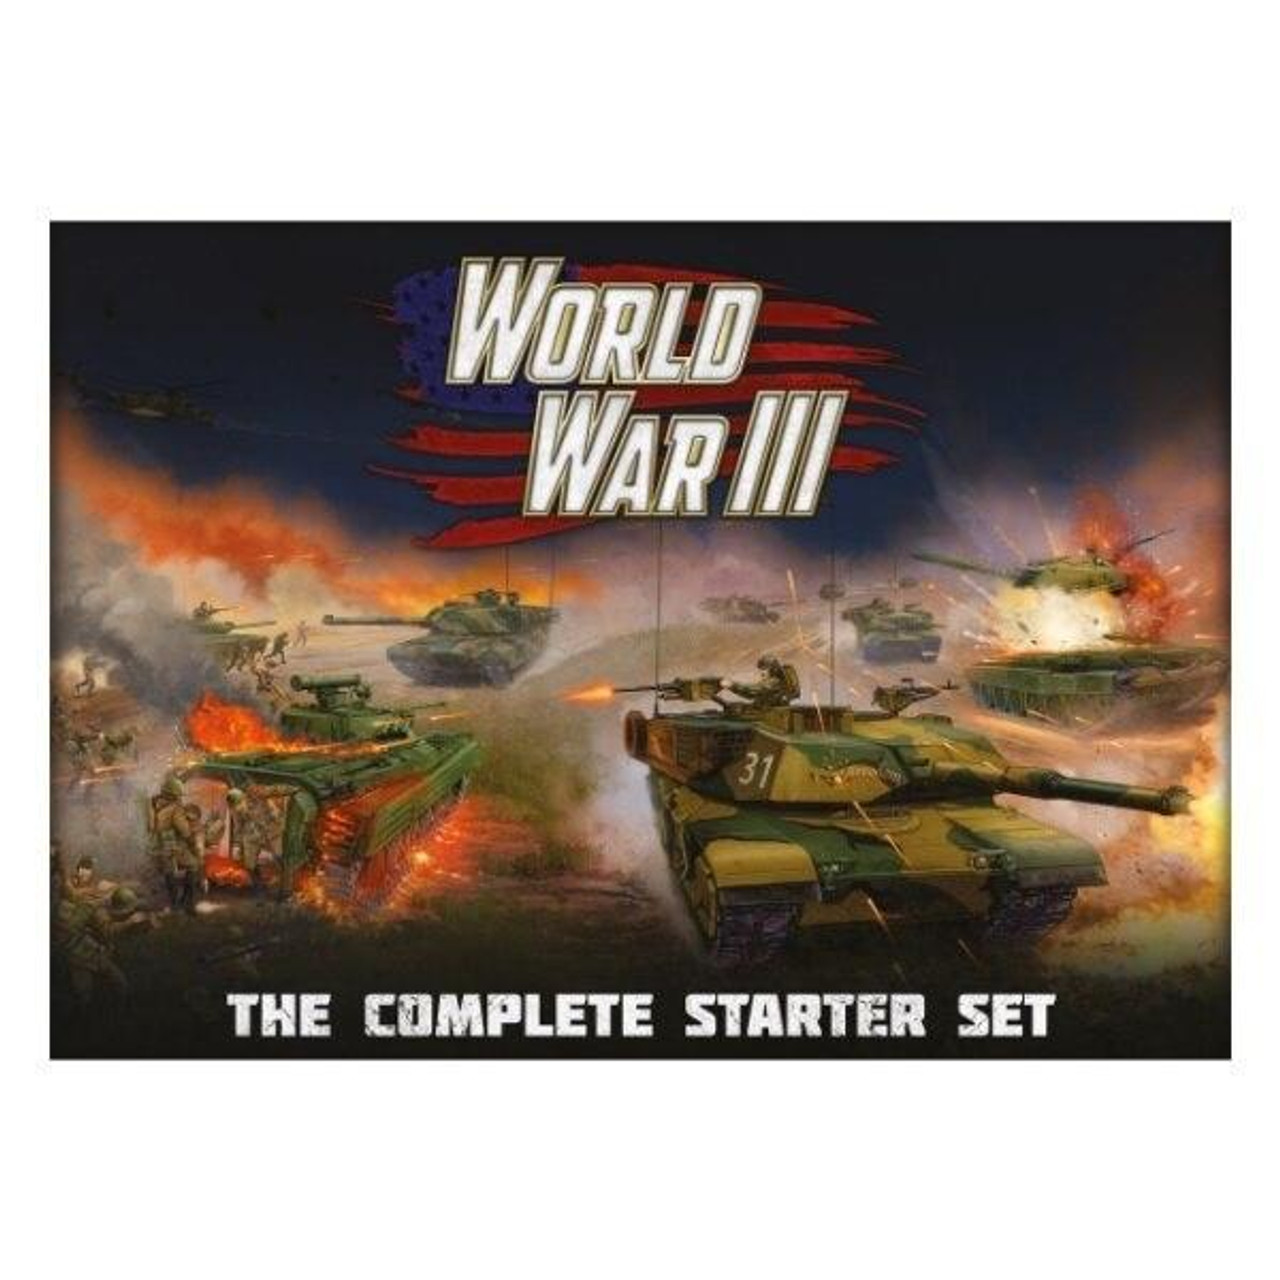 Battlefront Miniatures Team Yankee - World War III The Complete Starter Set